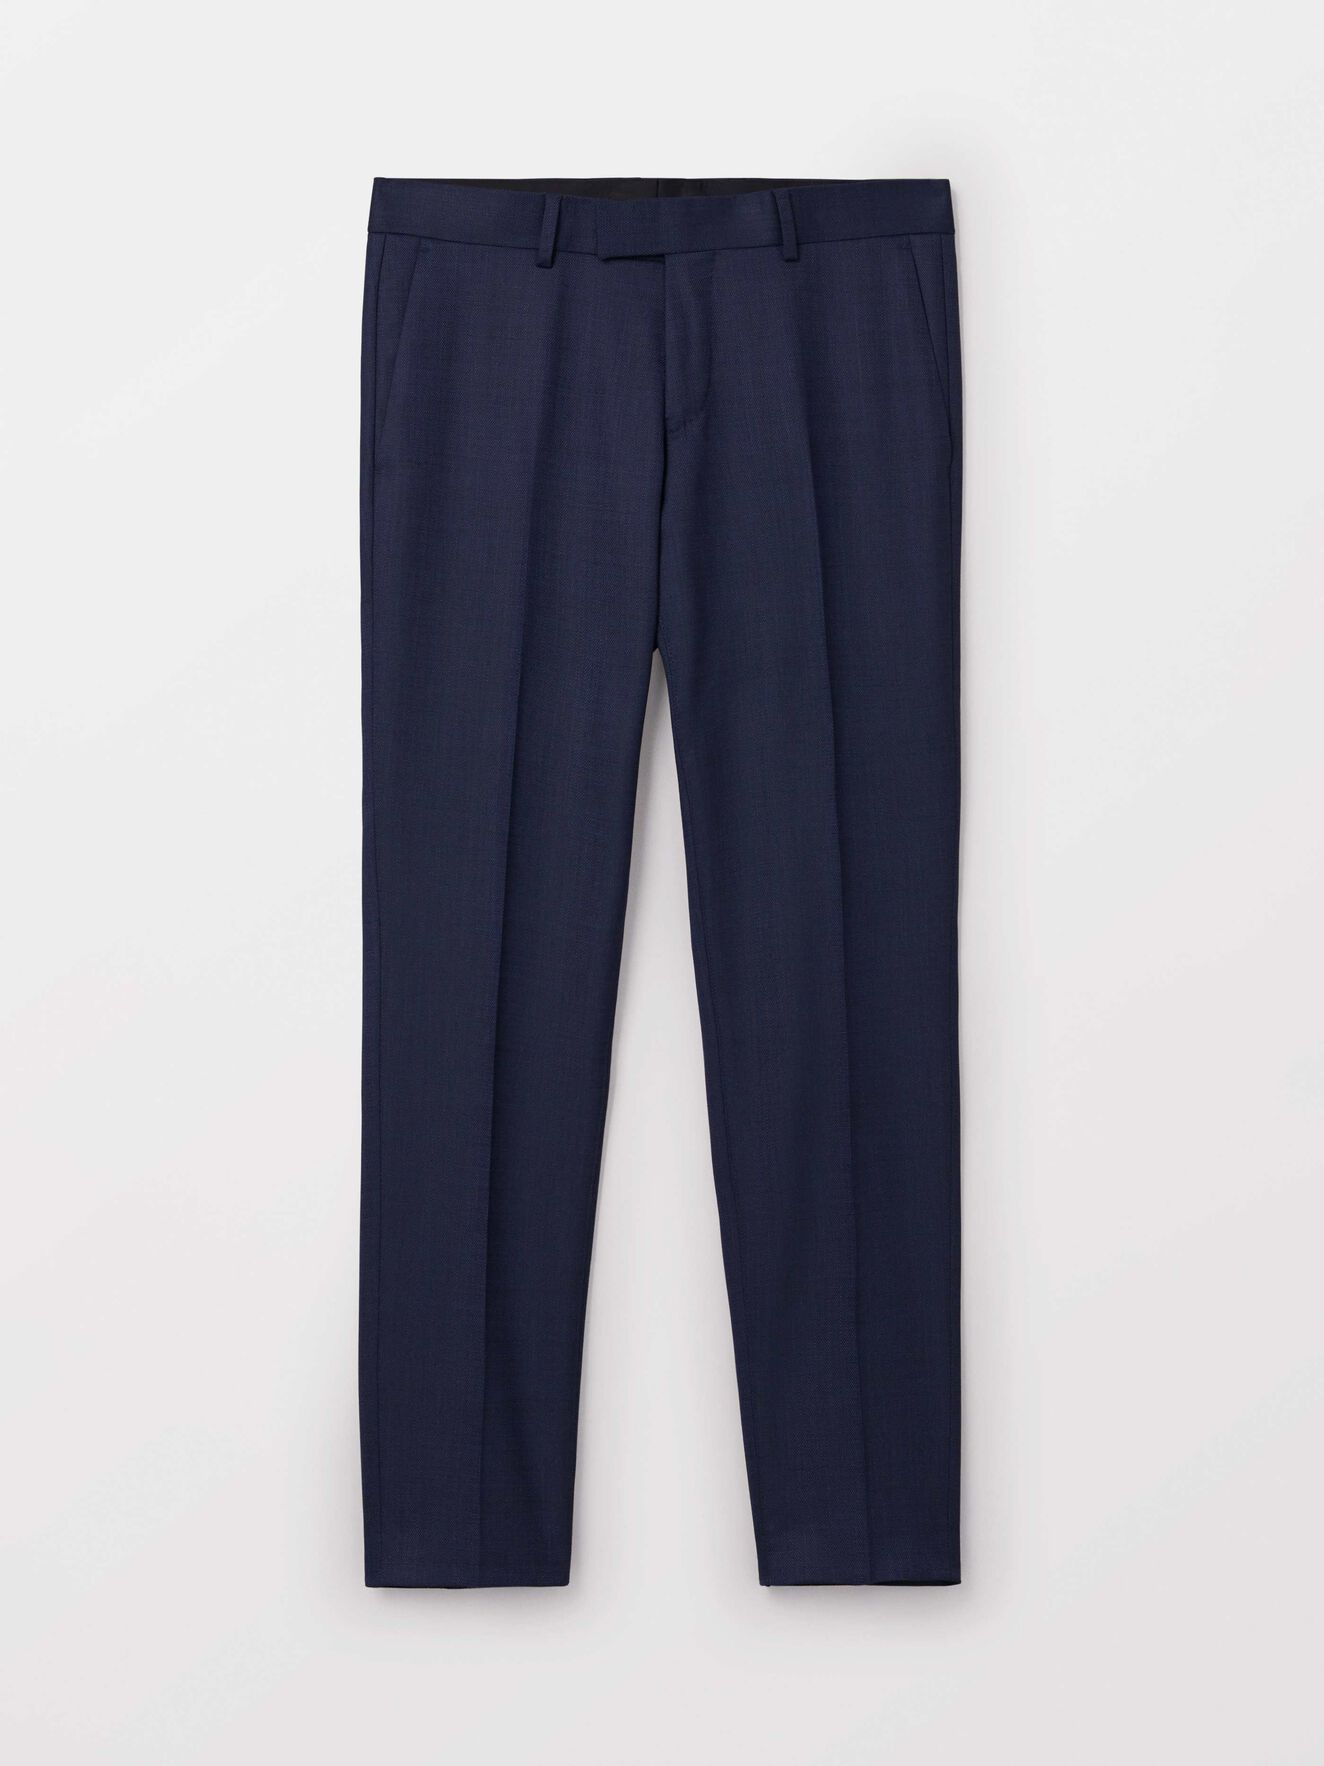 Tordon Trousers in Soft blue from Tiger of Sweden